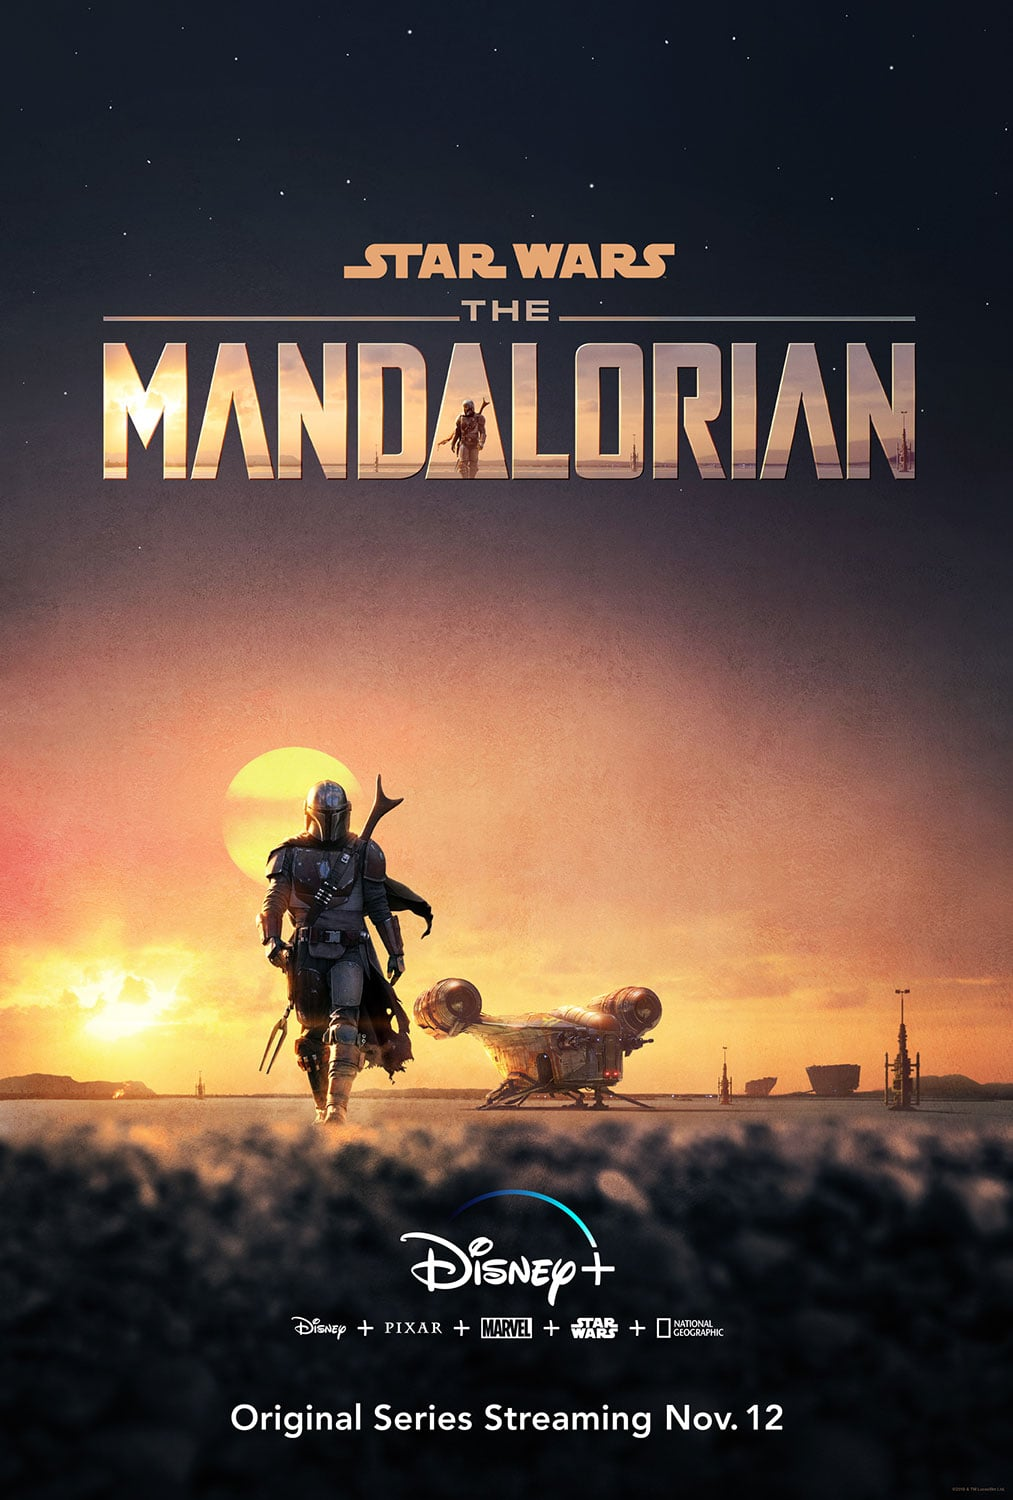 The Mandalorian sunset poster